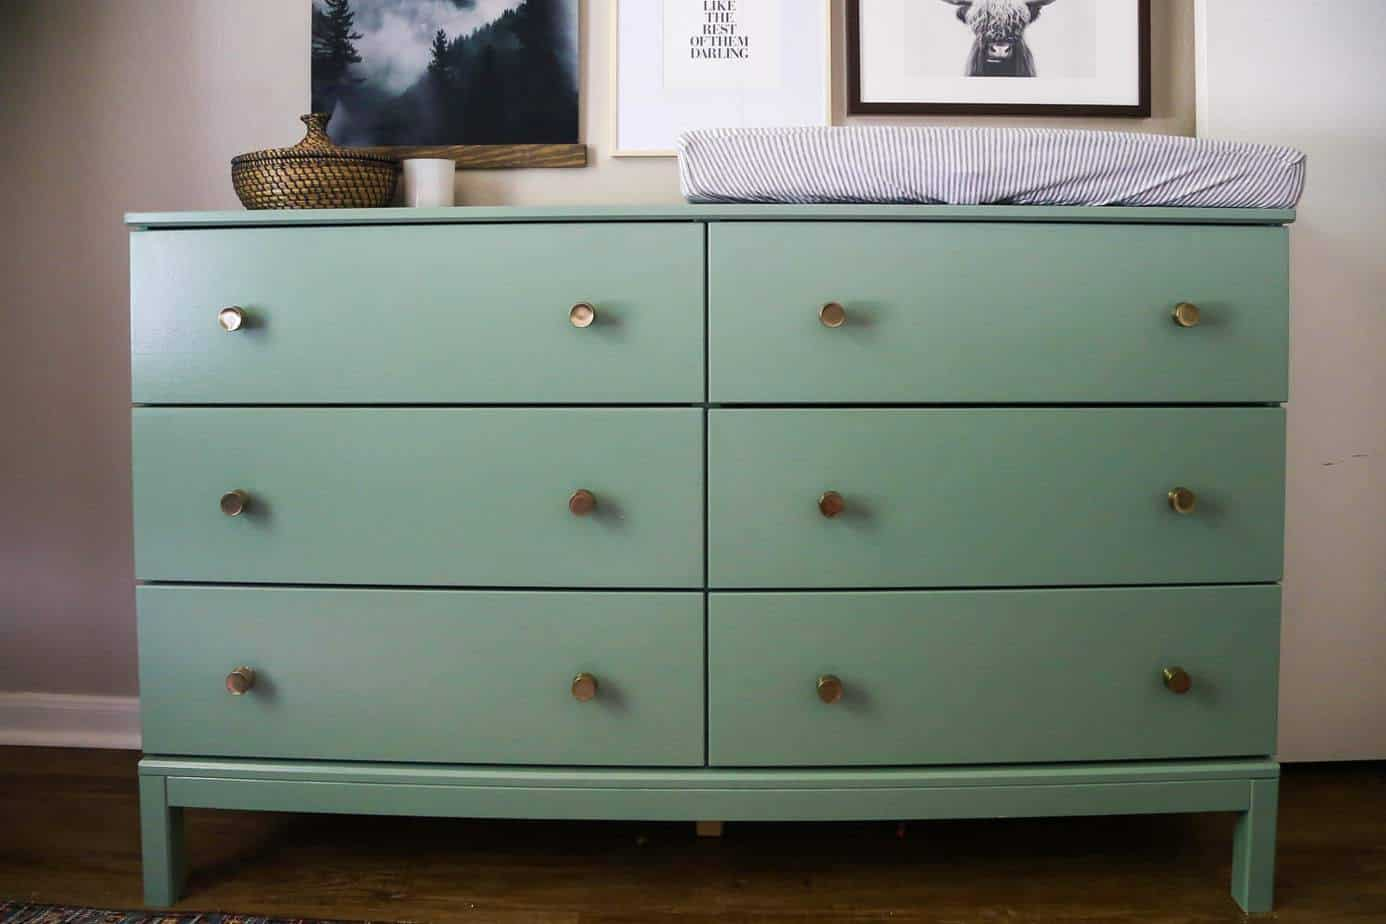 IKEA TARVA Dresser Hack From Dresser to Changing Table  Love  Renovations